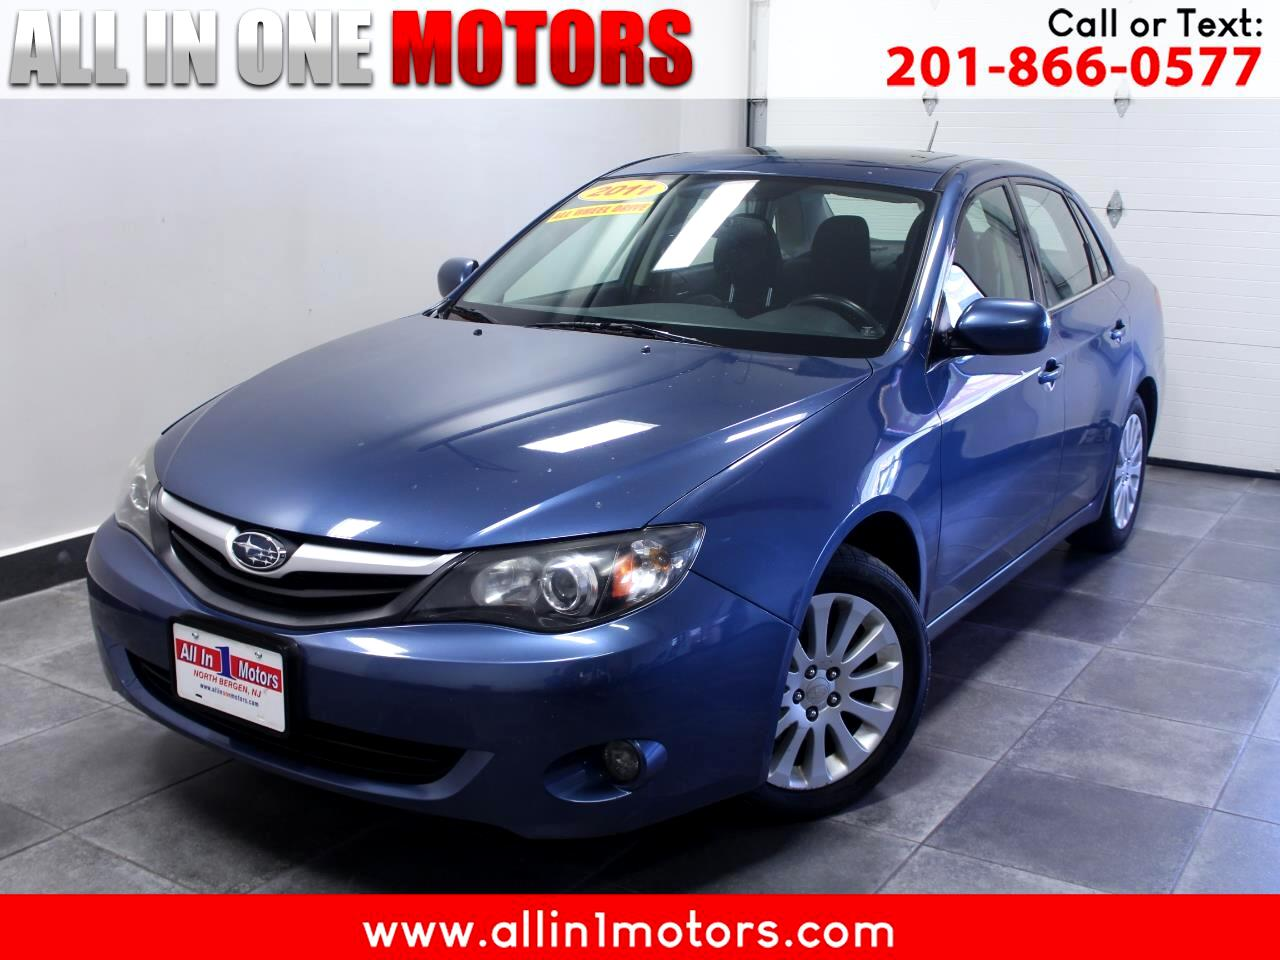 Subaru Impreza Sedan 4dr Man 2.5i Premium w/Pwr Moonroof Value Pkg 2011